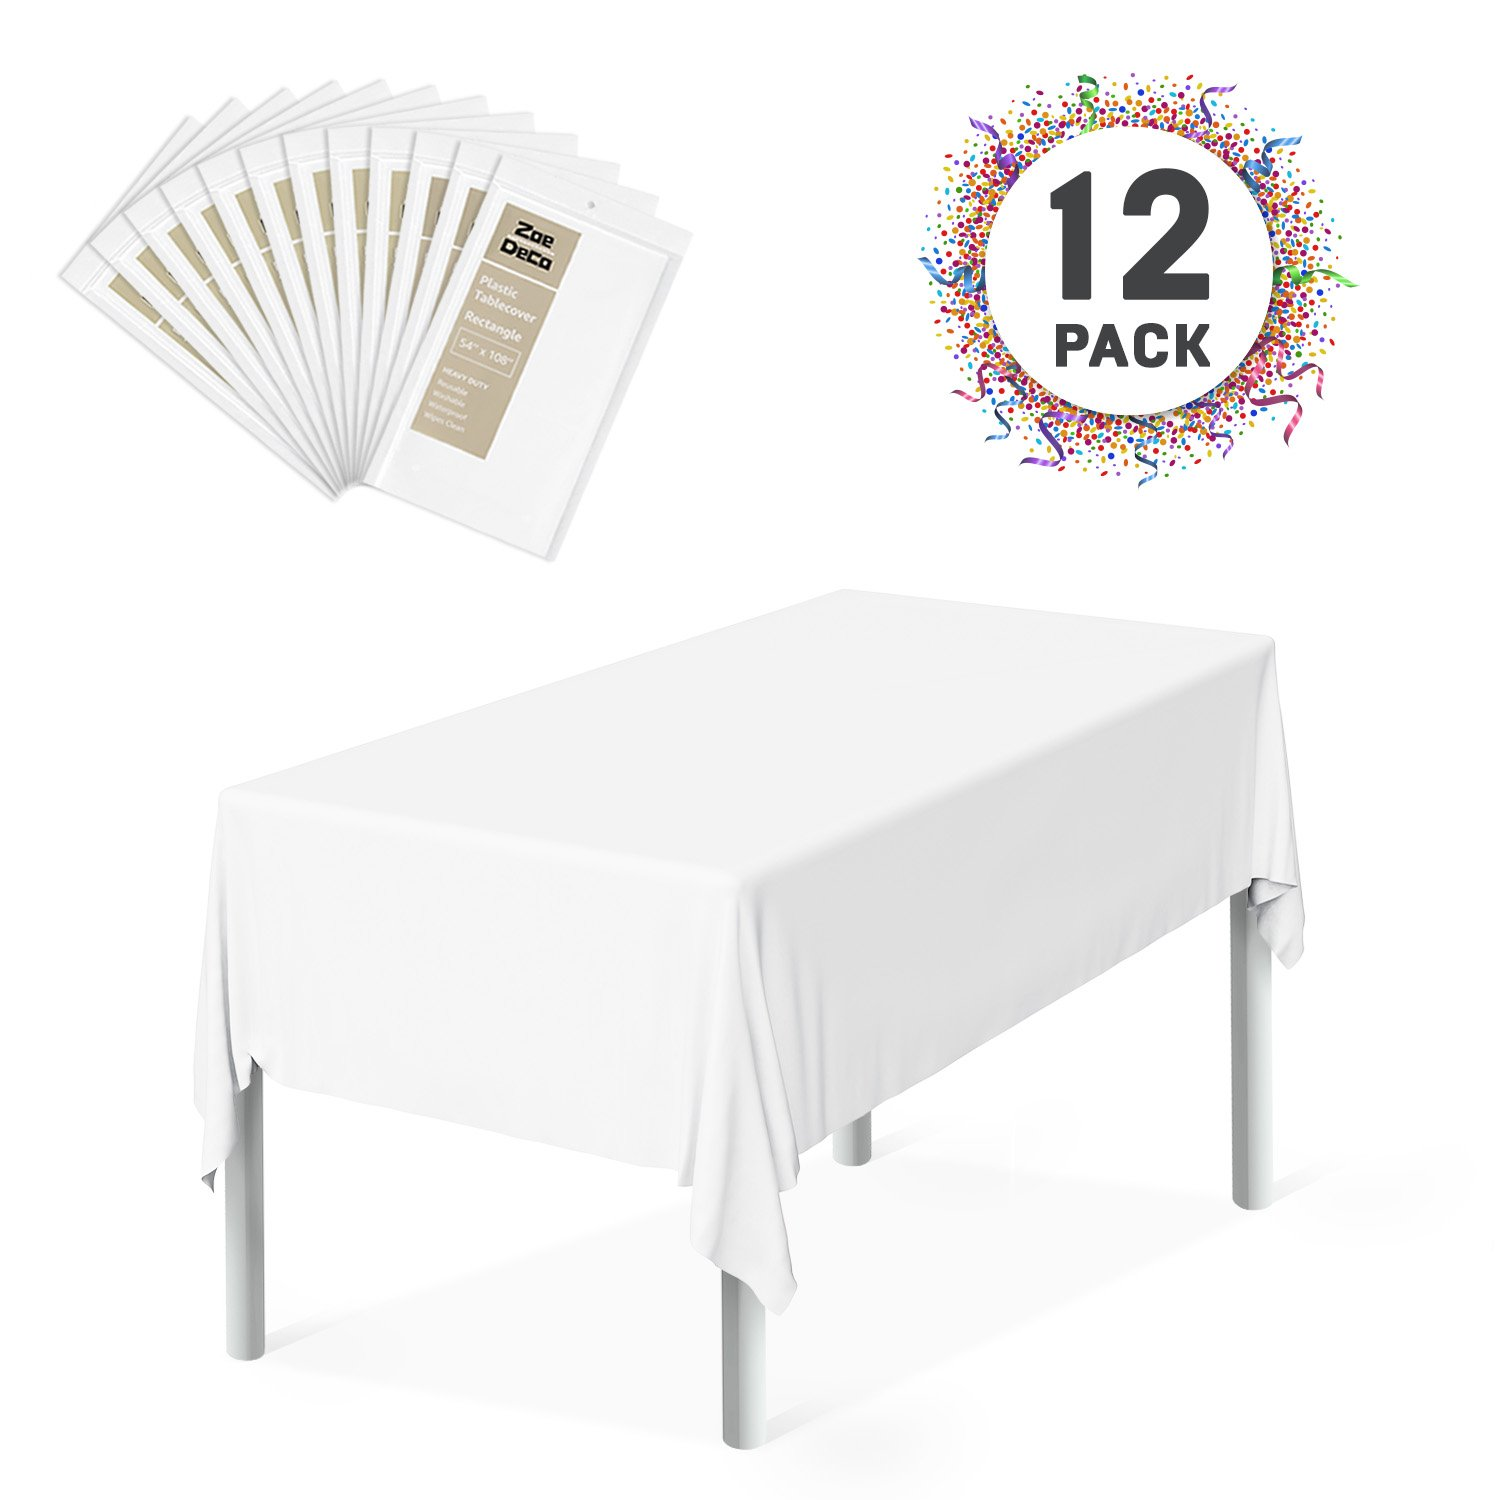 Zoe Deco Plastic Tablecloth, 54'' x 108'' White Tablecloth - 12 Pack - Rectangle Tablecloth for Parties, Graduations, and Picnics